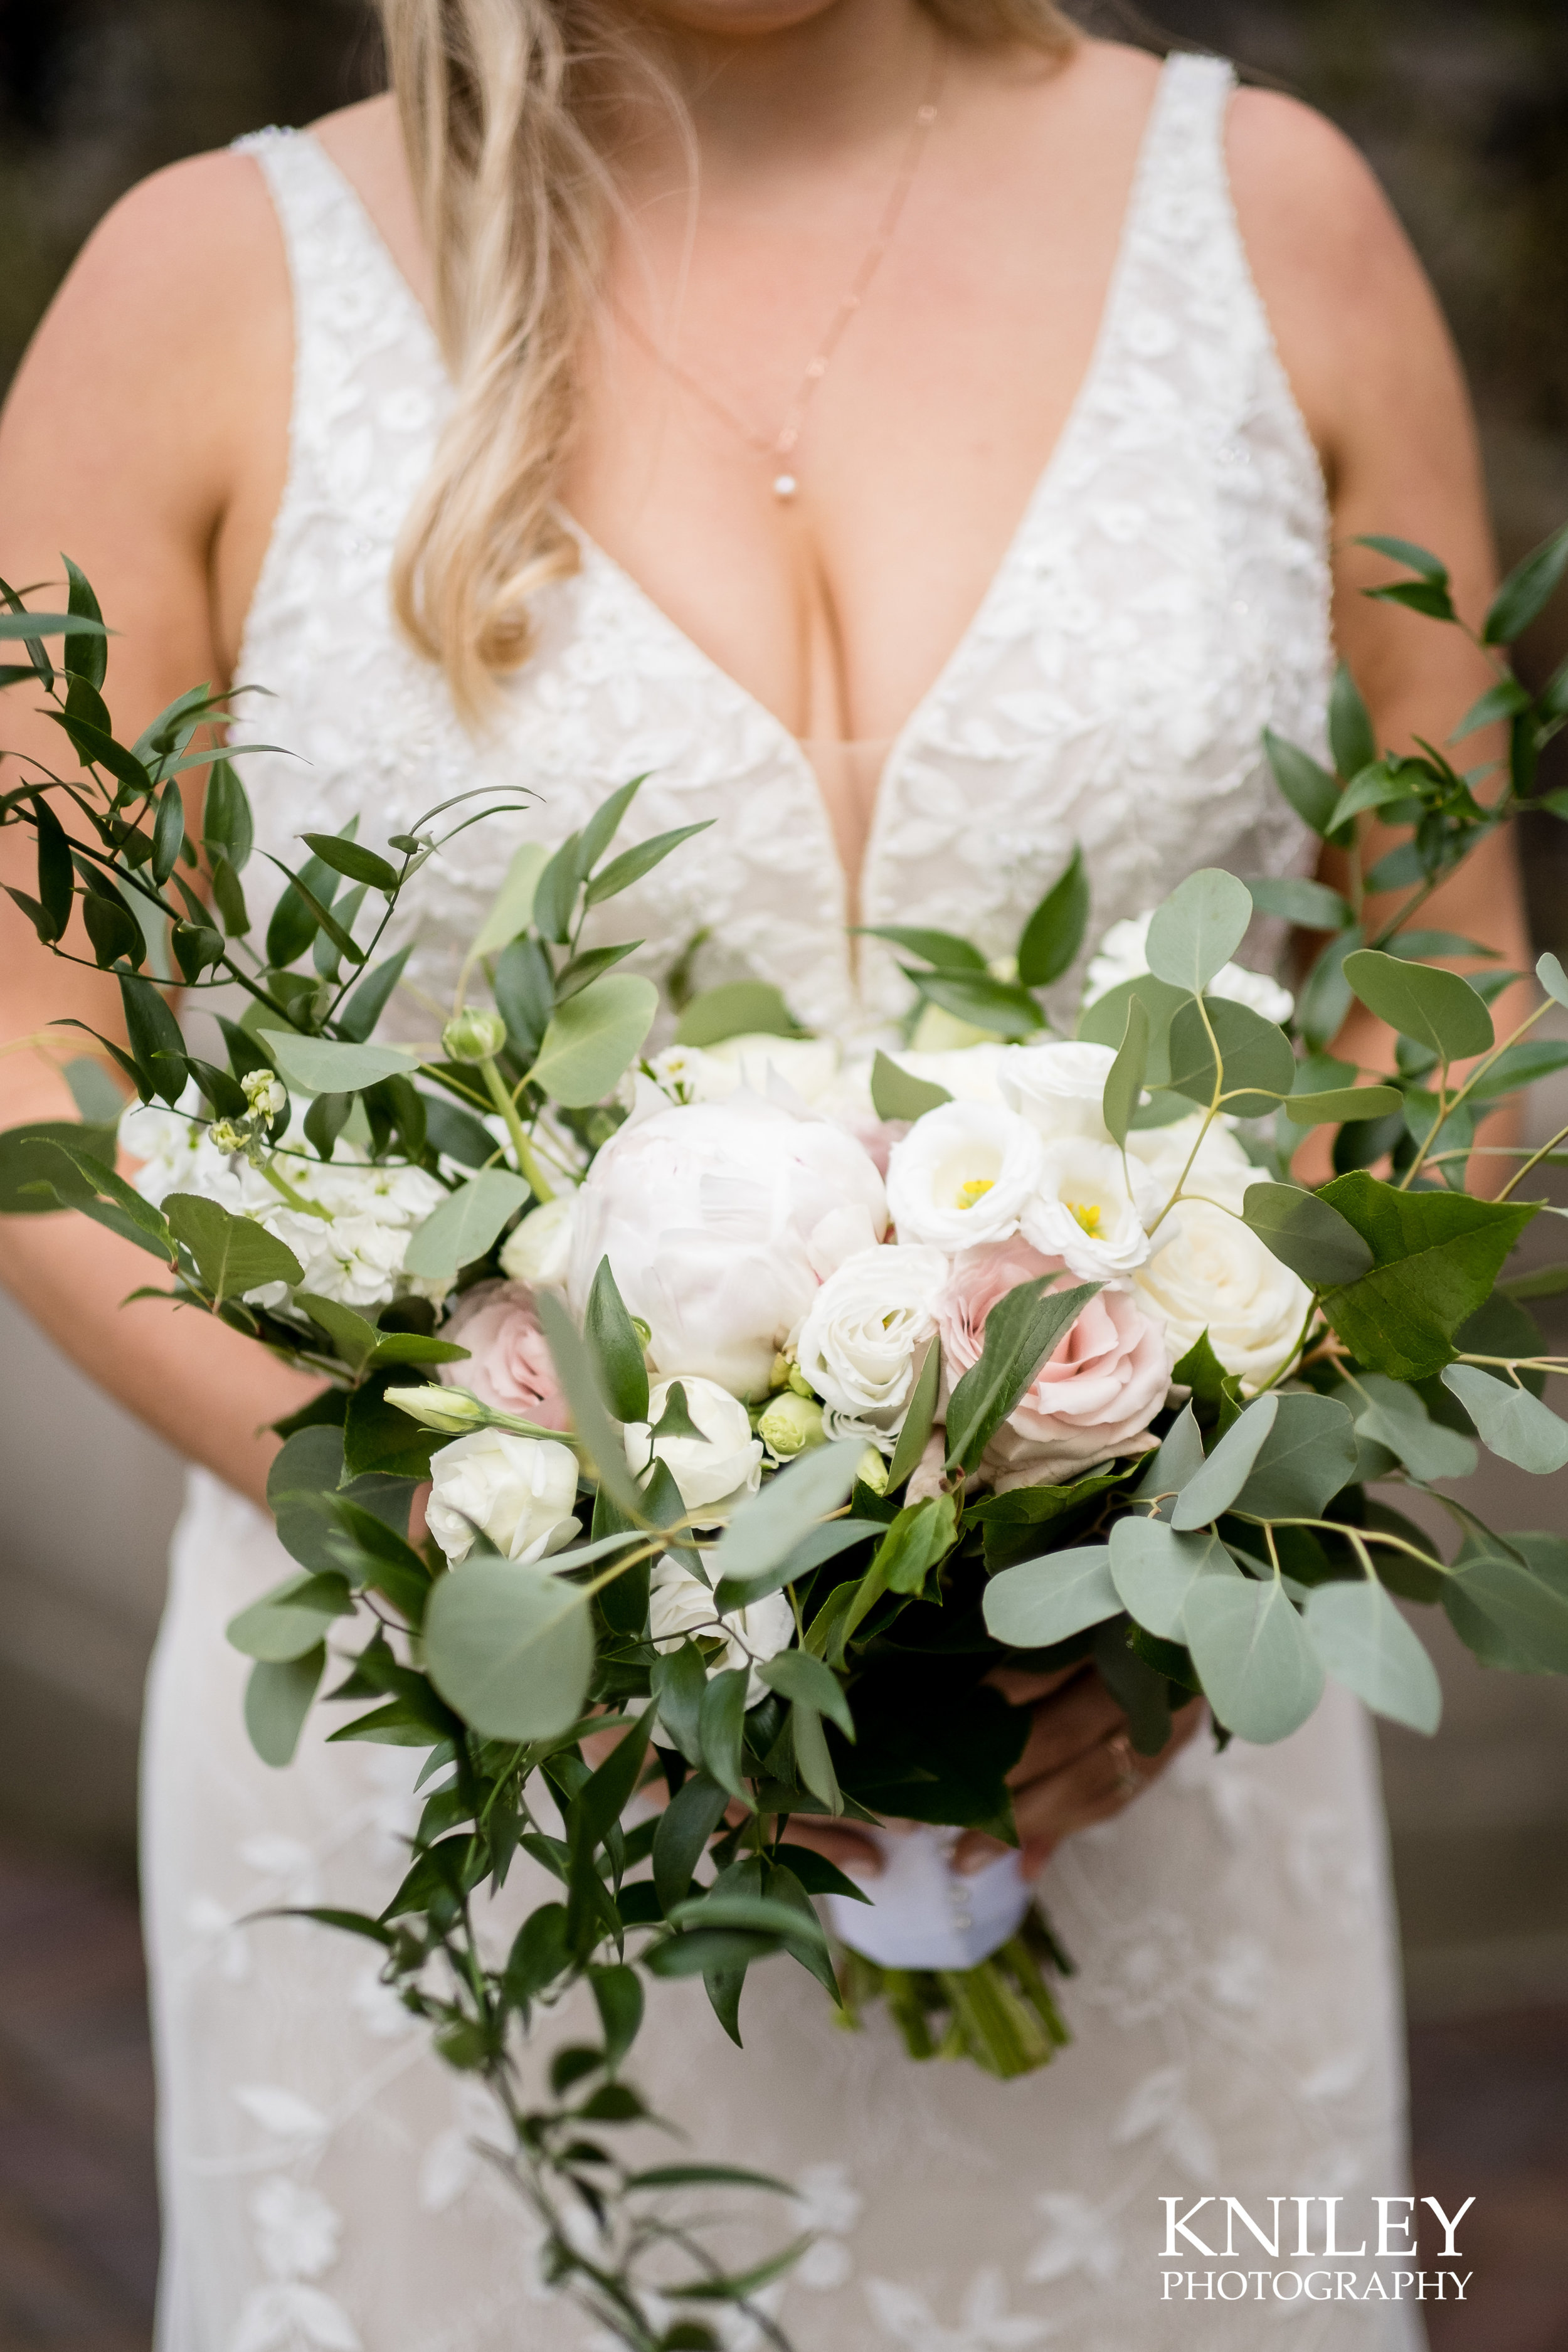 044-Kniley-Photography-I-Do-Wedding-Flowers-Wedding-Floral-Picture-044-XT3A4248.jpg